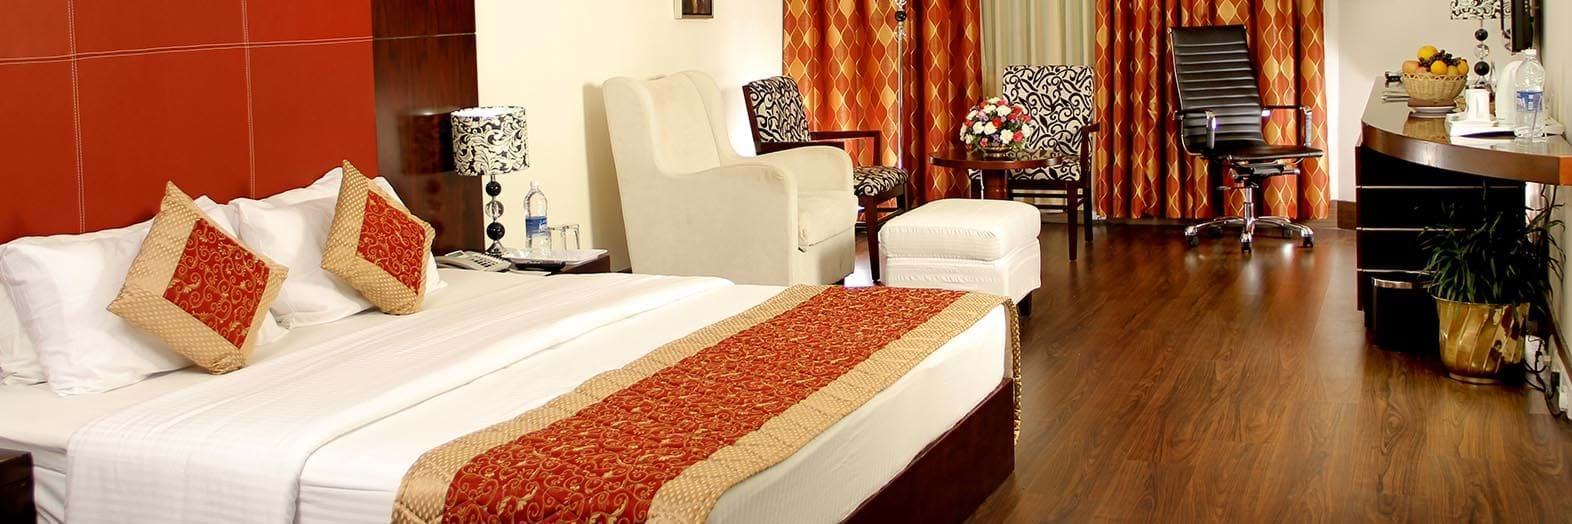 Fortune Hotel The South Park,  Trivandrum Hotels